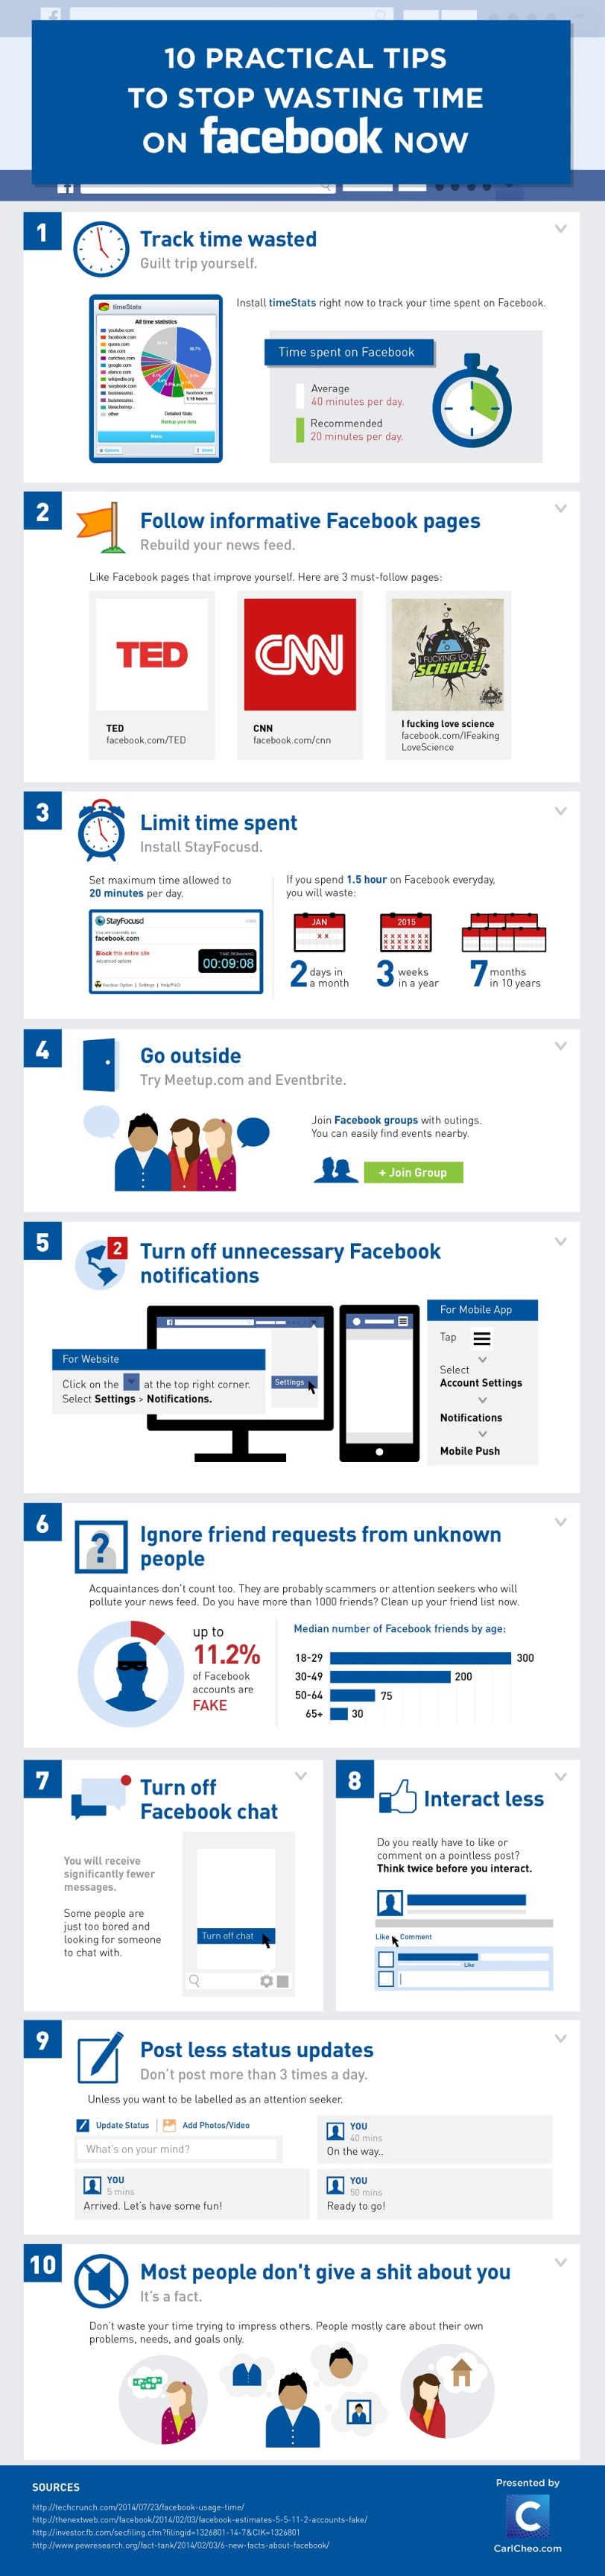 10 Practical Tips To Stop Wasting Time On Facebook Now